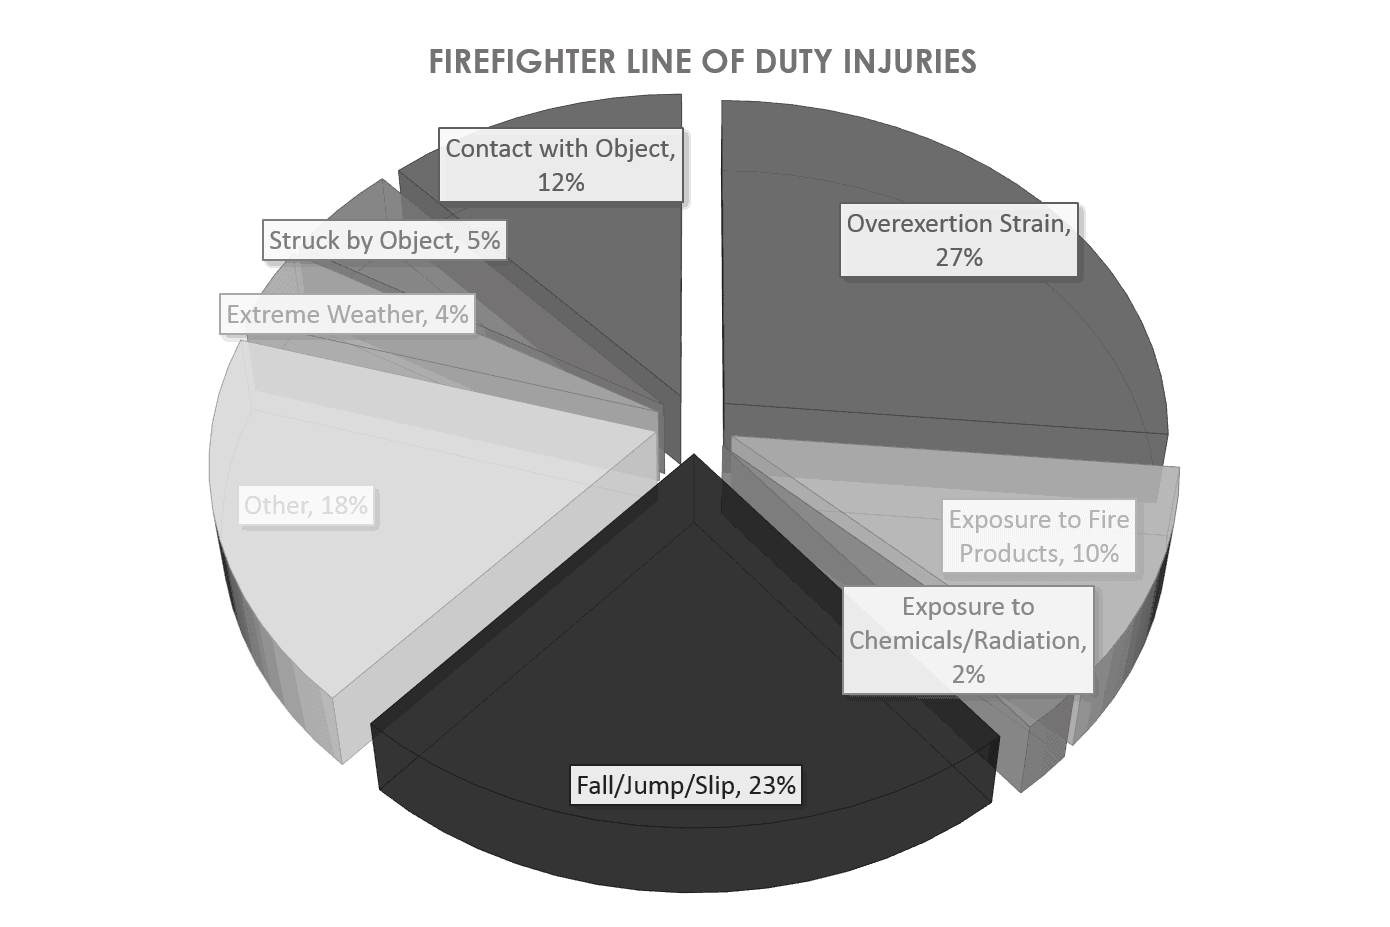 "Haynes, Hylton J. G. and Molis, Joseph L. ""U.S. Firefighter Injuries - 2014"" NFPA. NFPA, November 2015. Web. 1 8 2016   http://www.nfpa.org/~/media/files/research/nfpa-reports/fire-service-statistics/osffinjuries.pdf?la=en"